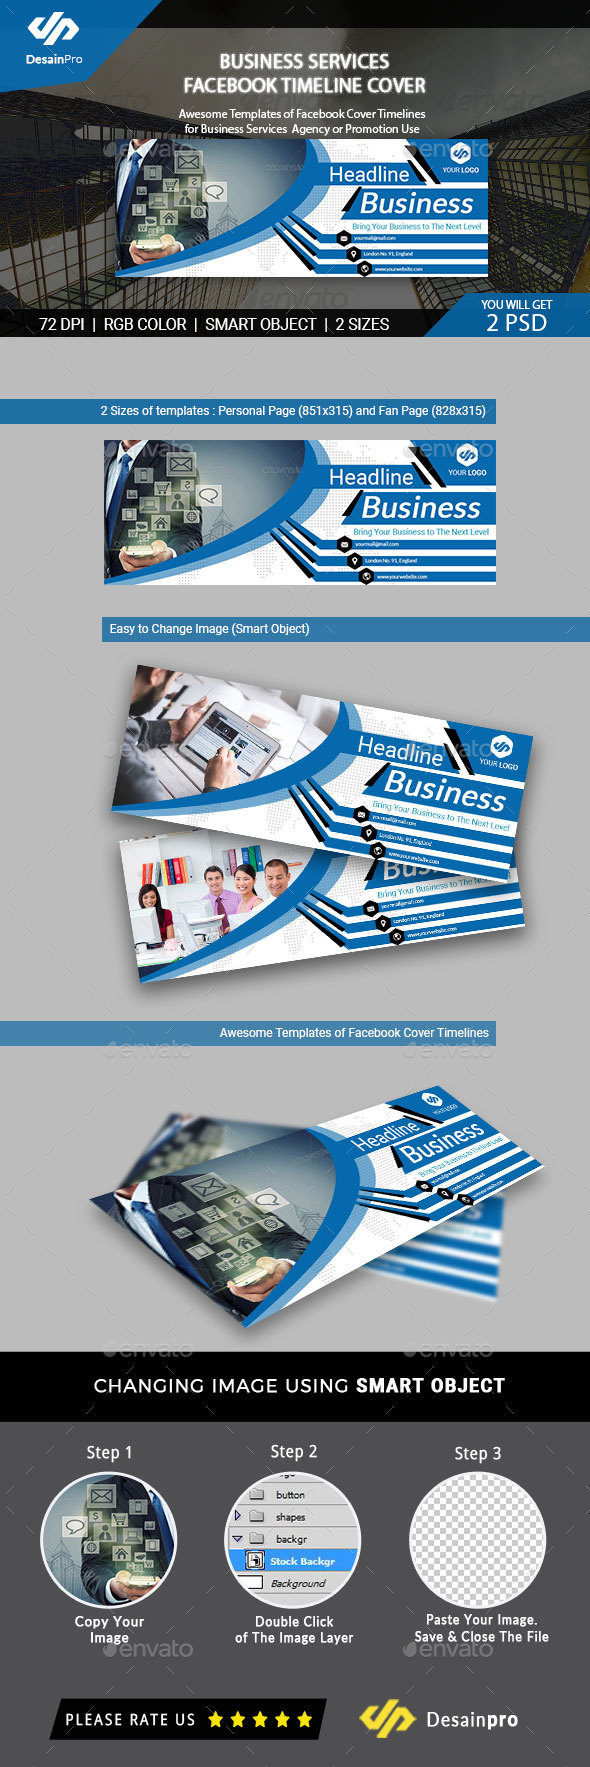 Business Services FB Cover Timeline - AR - Facebook Timeline Covers Social Media